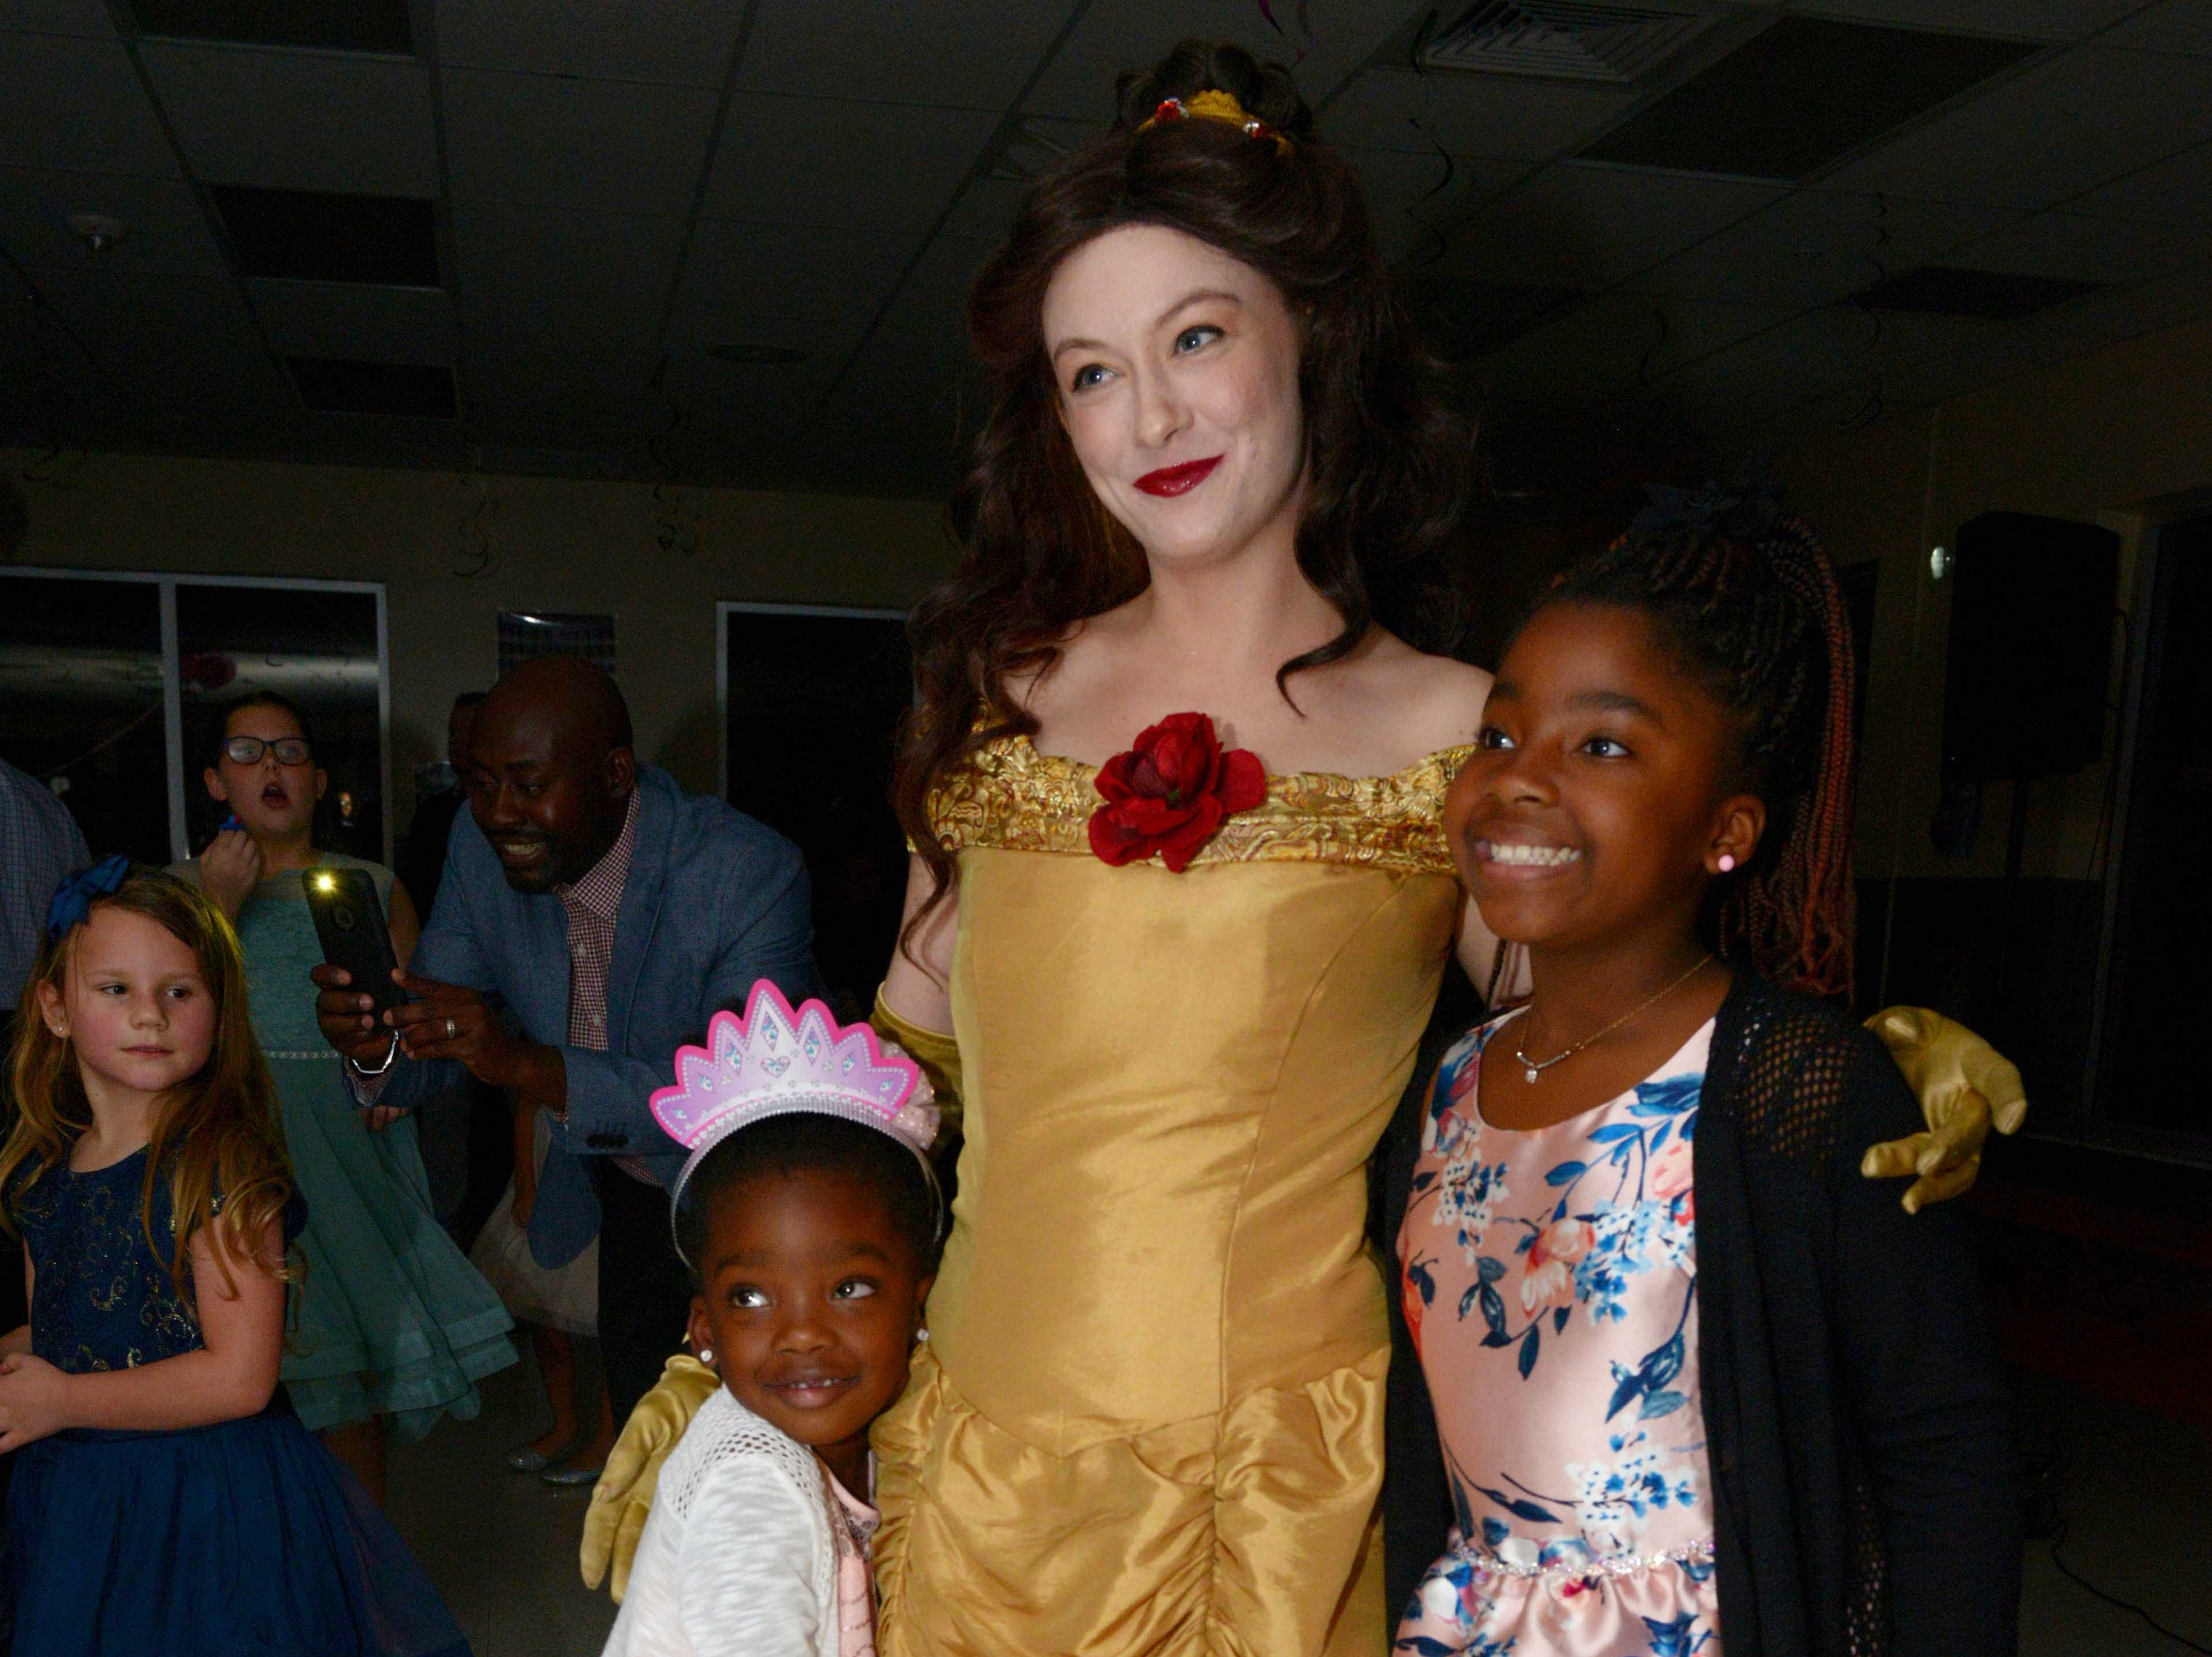 Layna and Makayla with Princess Belle at the Father/Daughter/Someone Special Dance at Renaissance Charter School of St. Lucie.